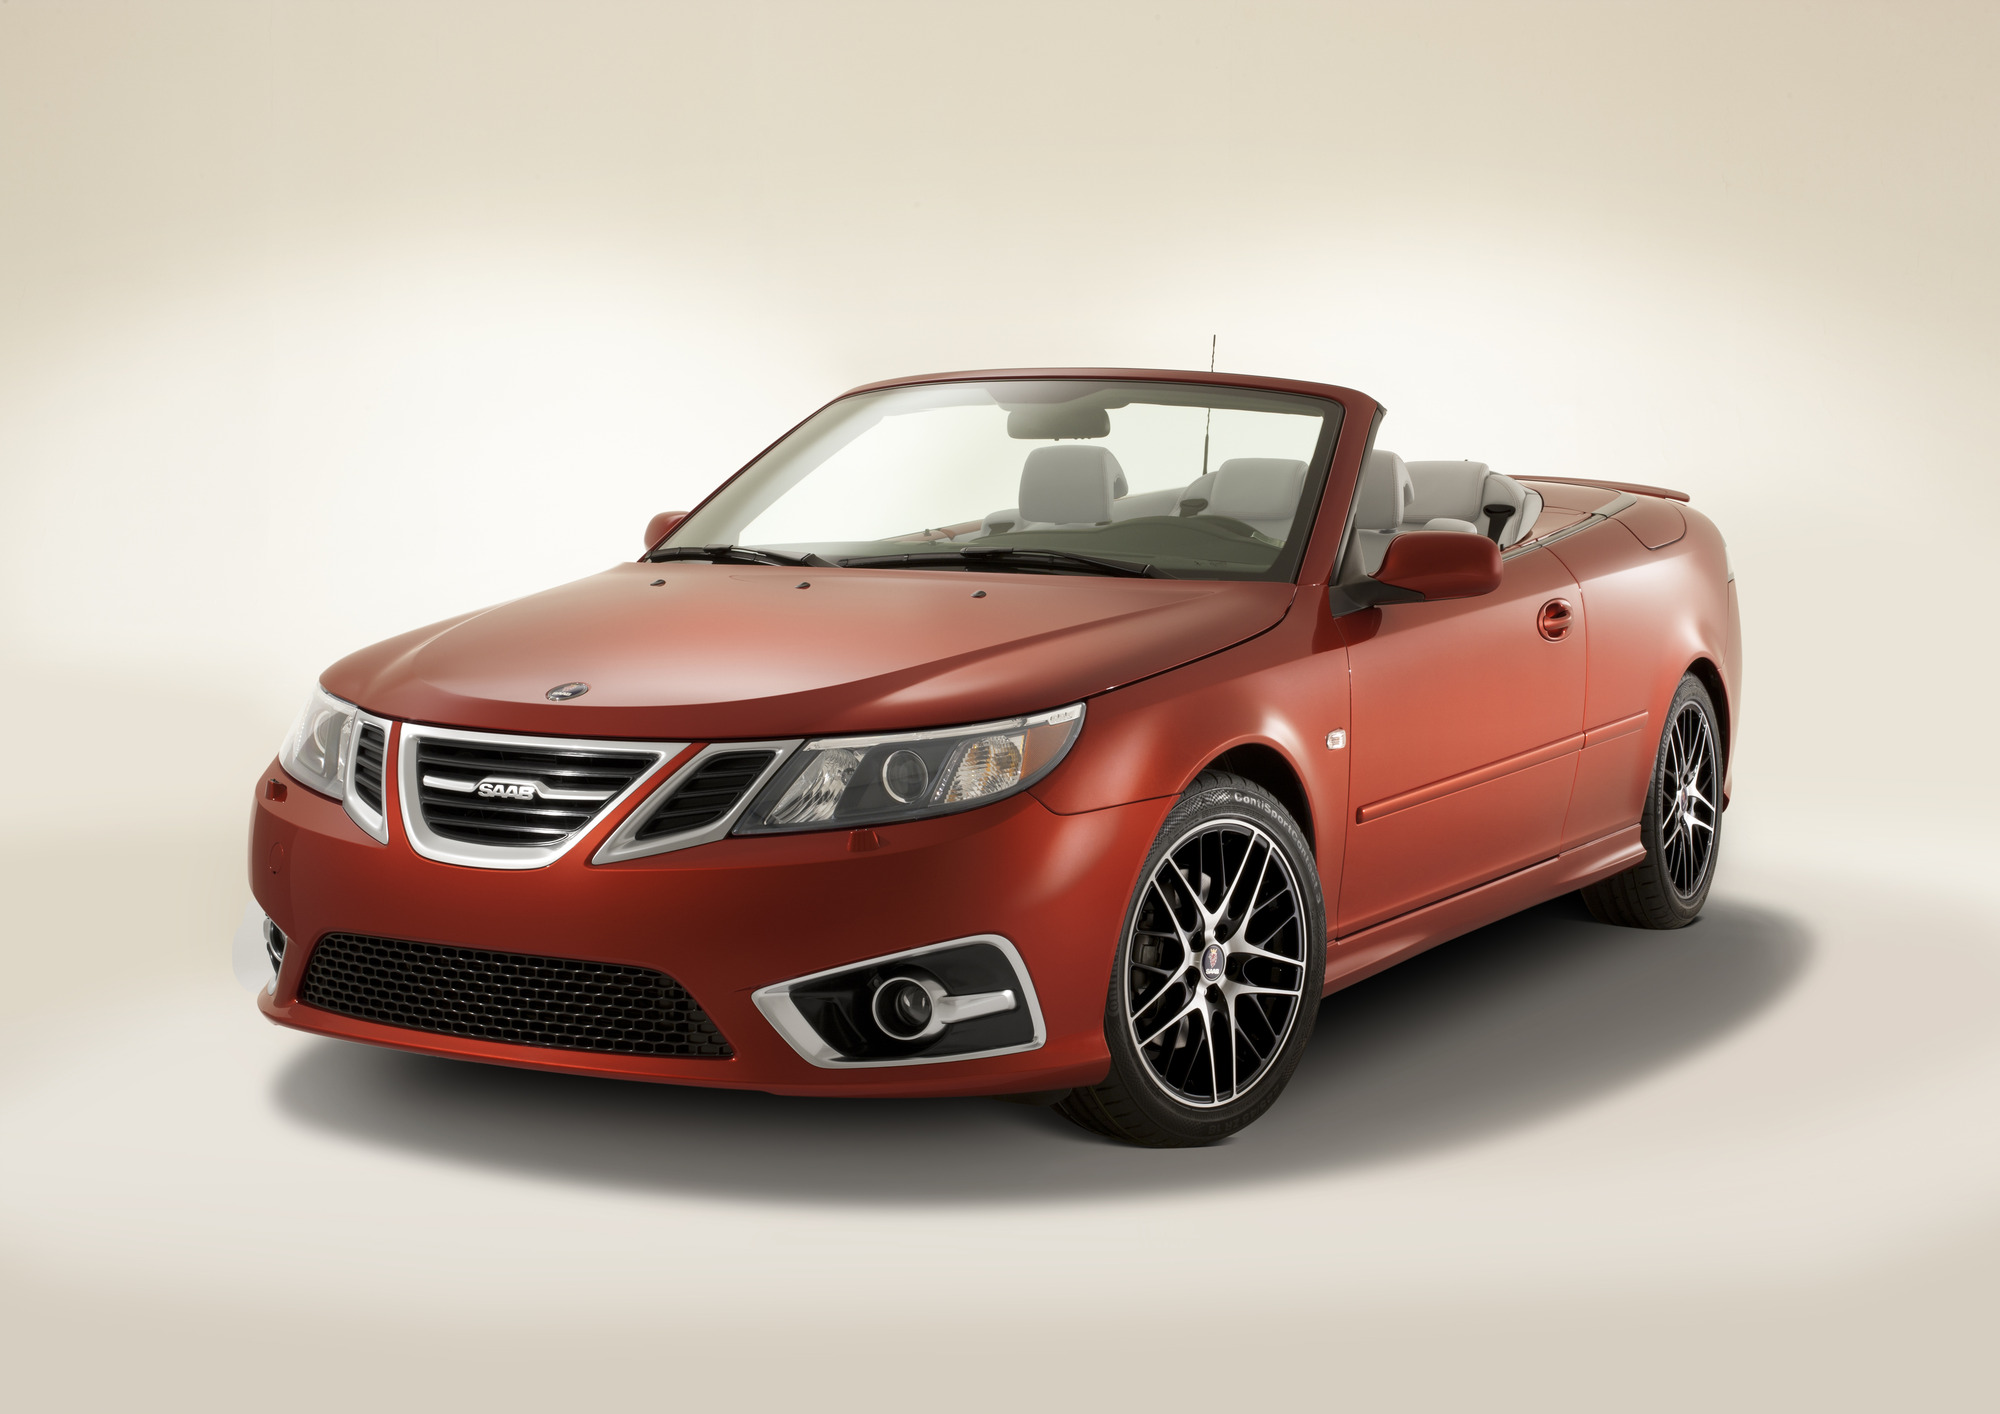 Limited Edition 2012 Saab 9 3 Independence Convertible Preview